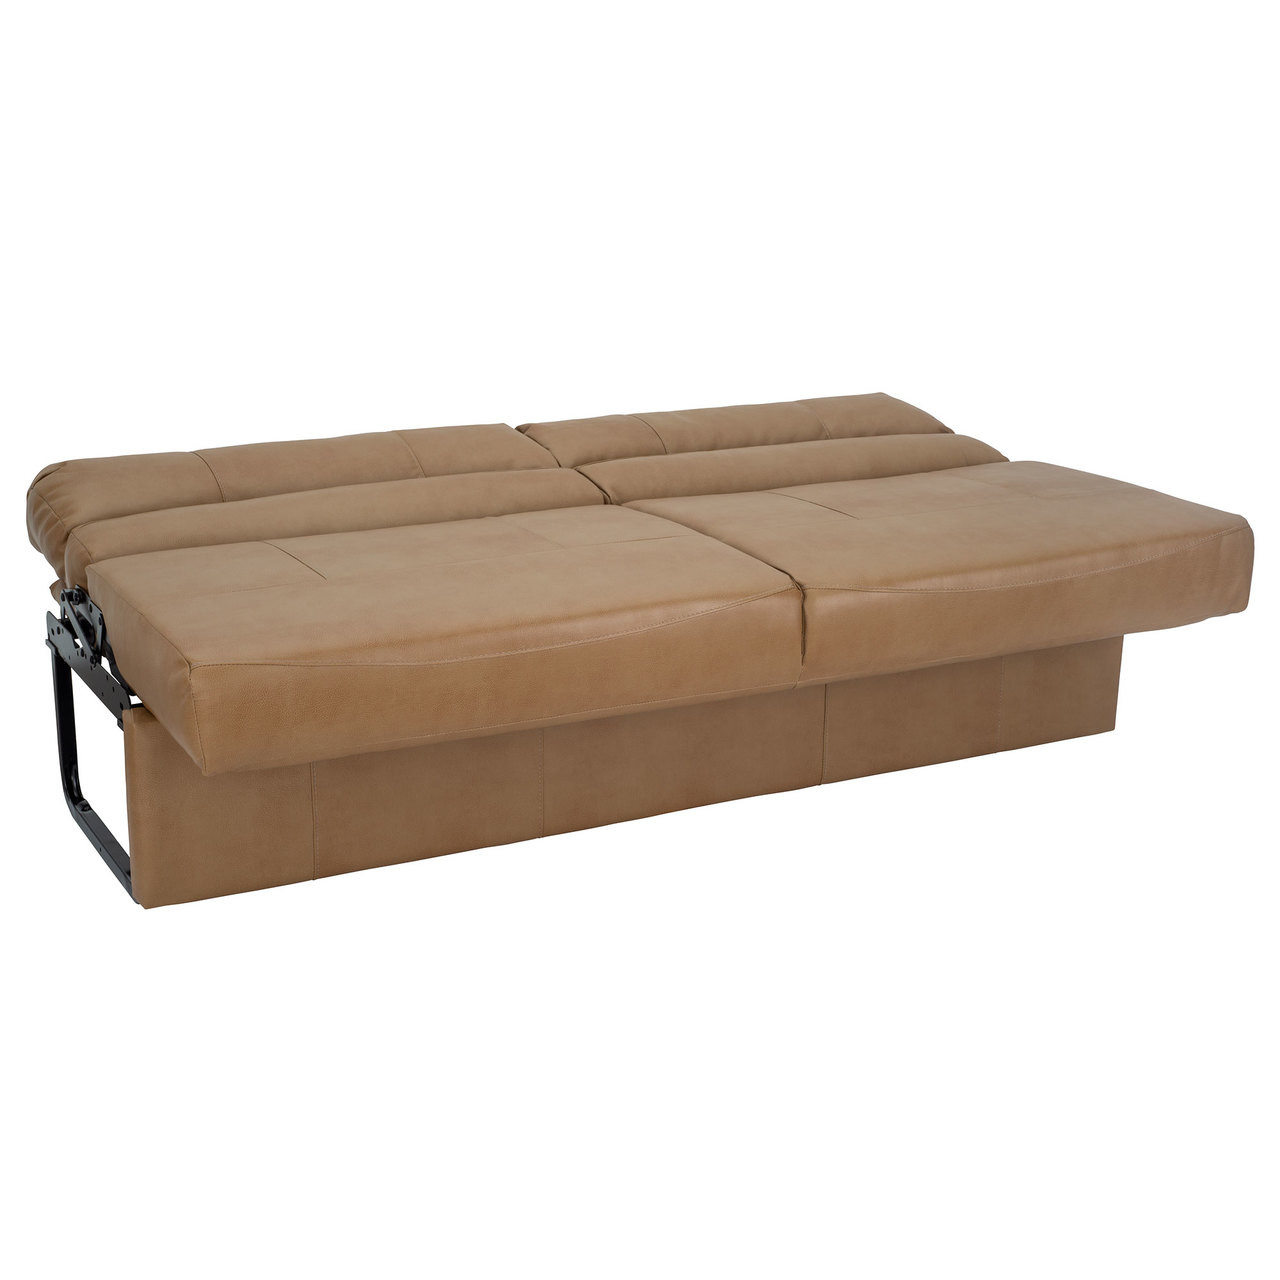 Excellent Recpro Charles 72 Rv Jackknife Sleeper Sofa With Optional Alphanode Cool Chair Designs And Ideas Alphanodeonline